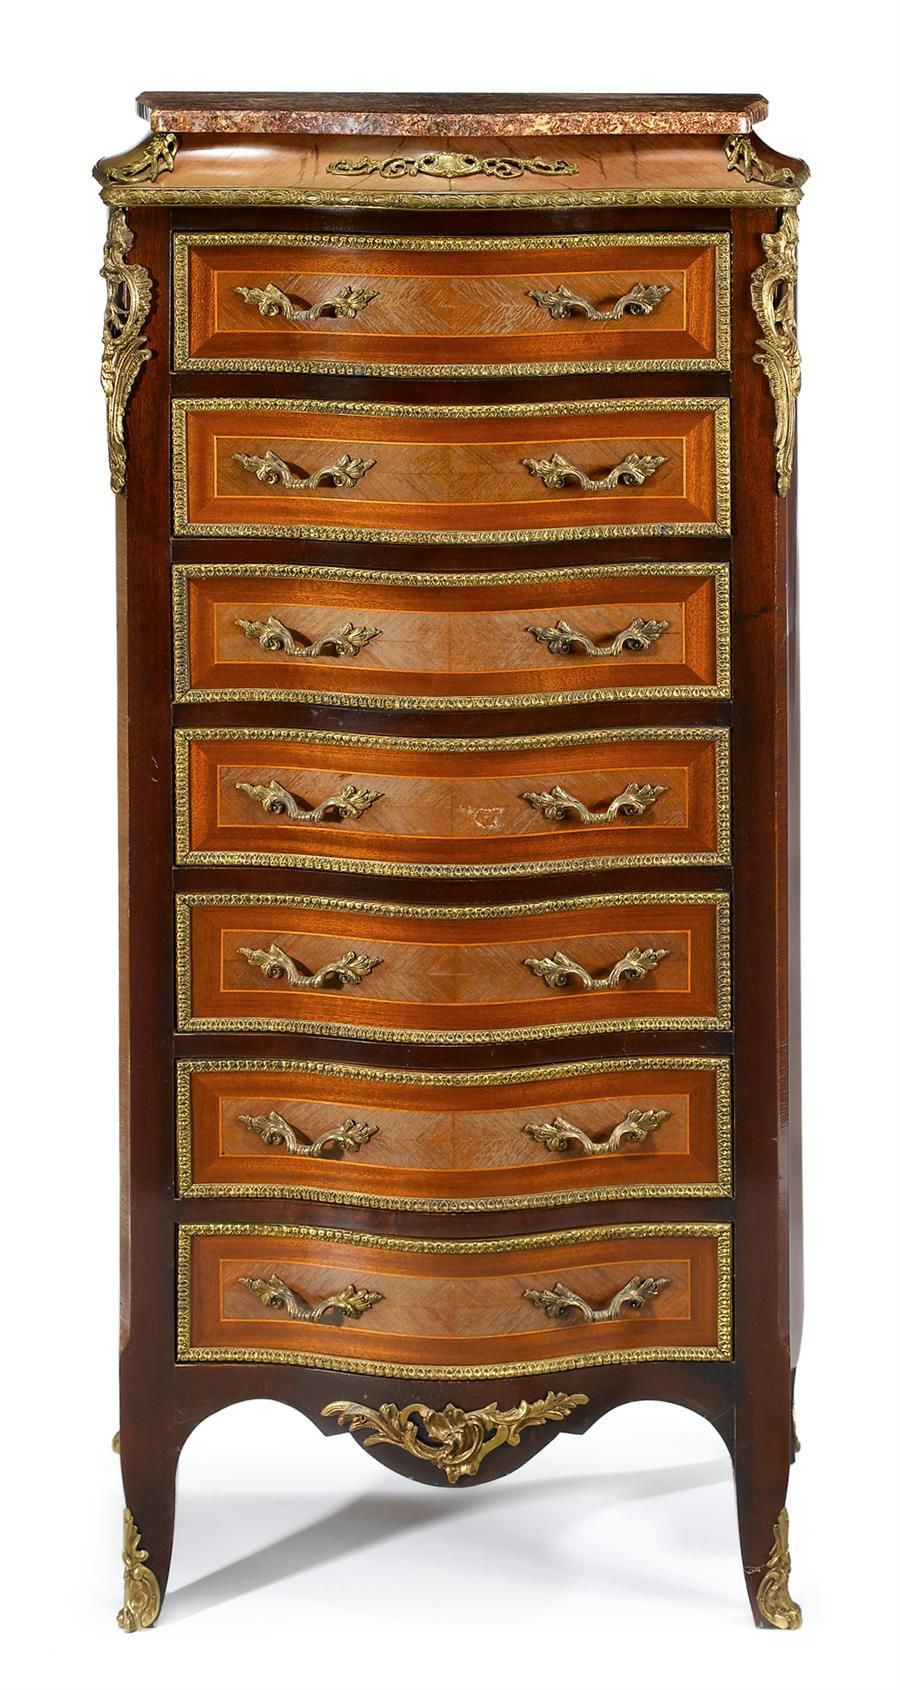 Louis XVI style gilt metal mounted kingwood and tulipwood marble top semanier  first half 20th century  The serpentine marble top over conforming case enclosing seven line inlaid drawers, over shaped apron and short cabriole legs terminating in sabots.